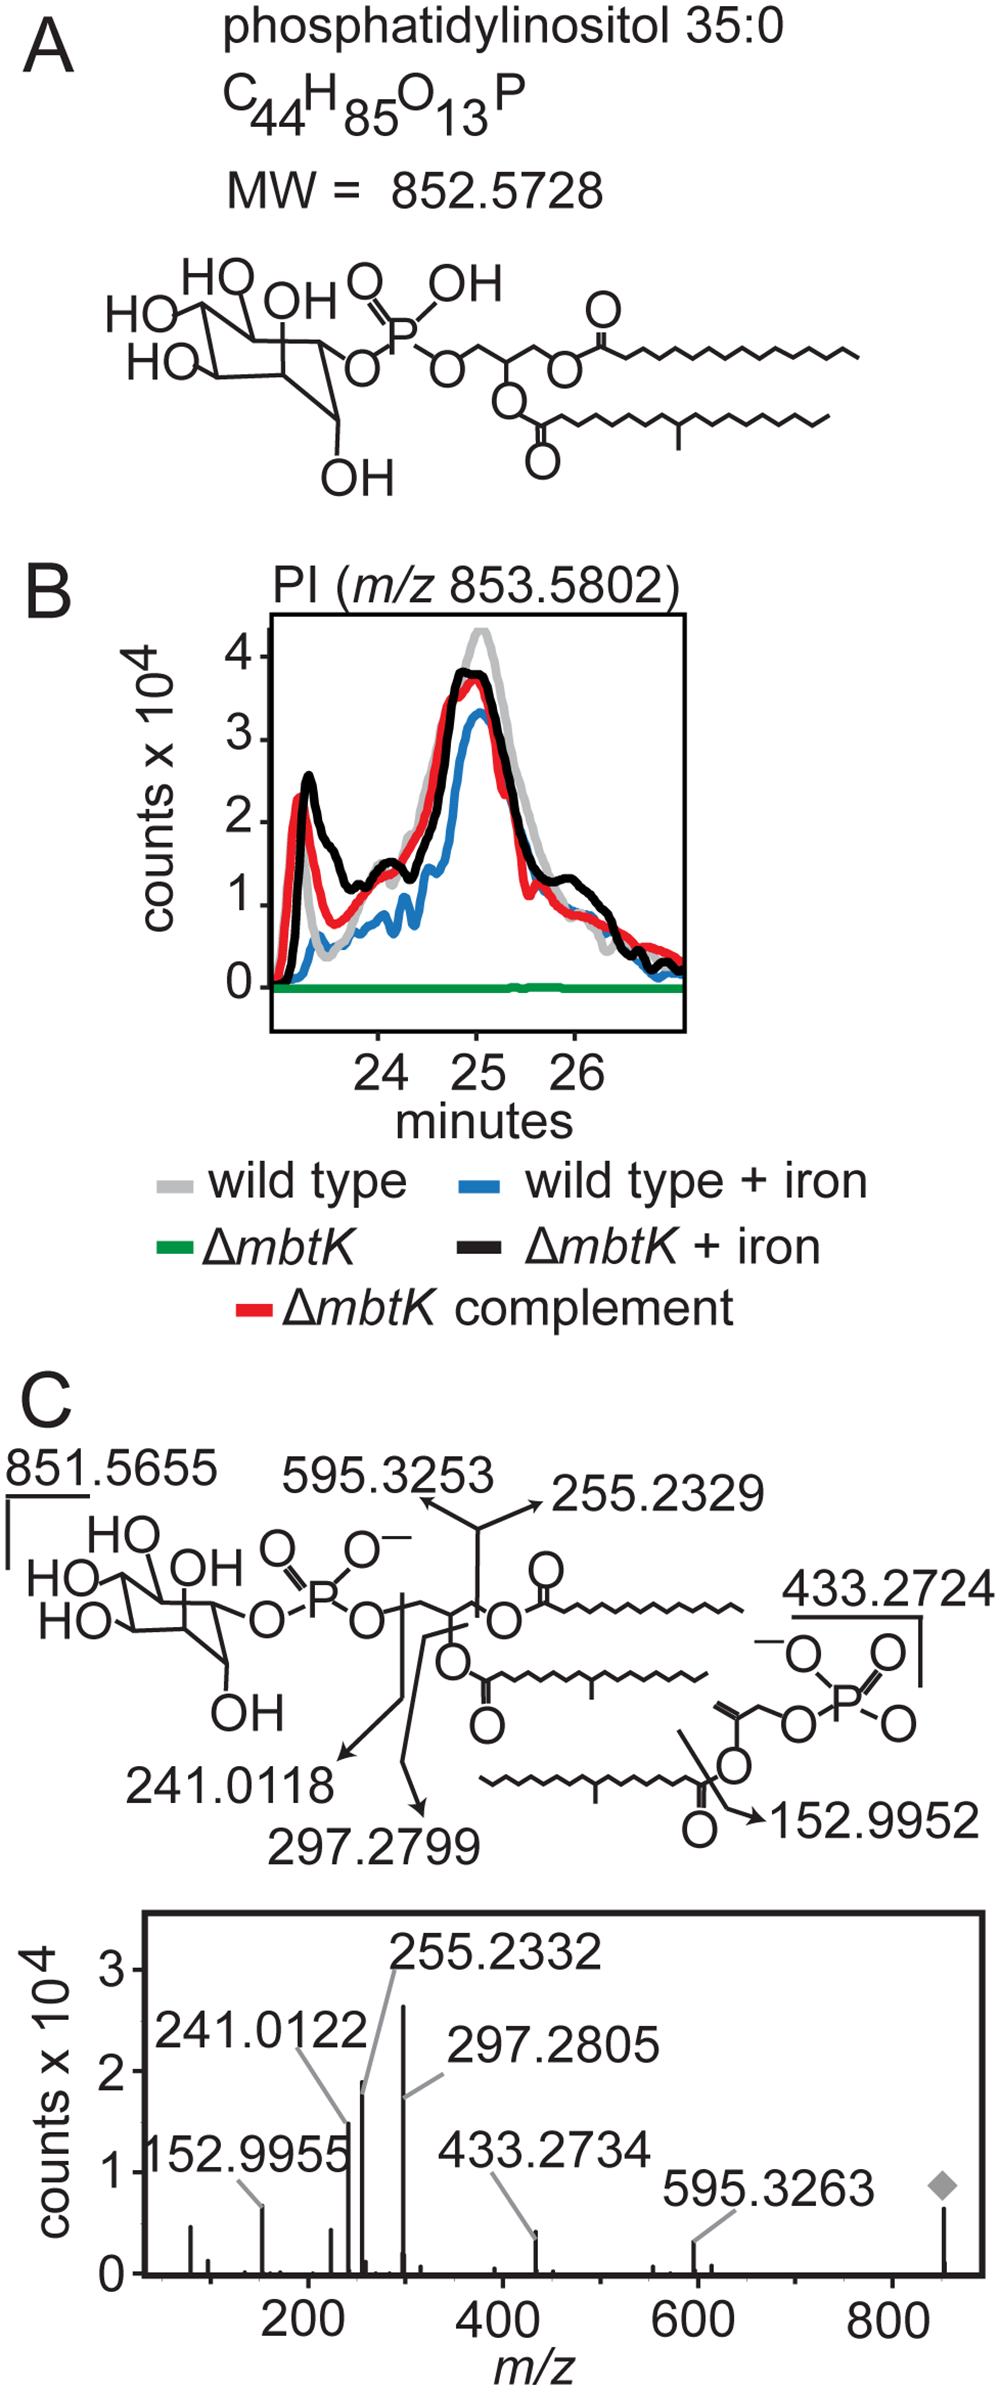 <i>mbtK</i> deletion depletes phosphatidylinositol during iron starvation.